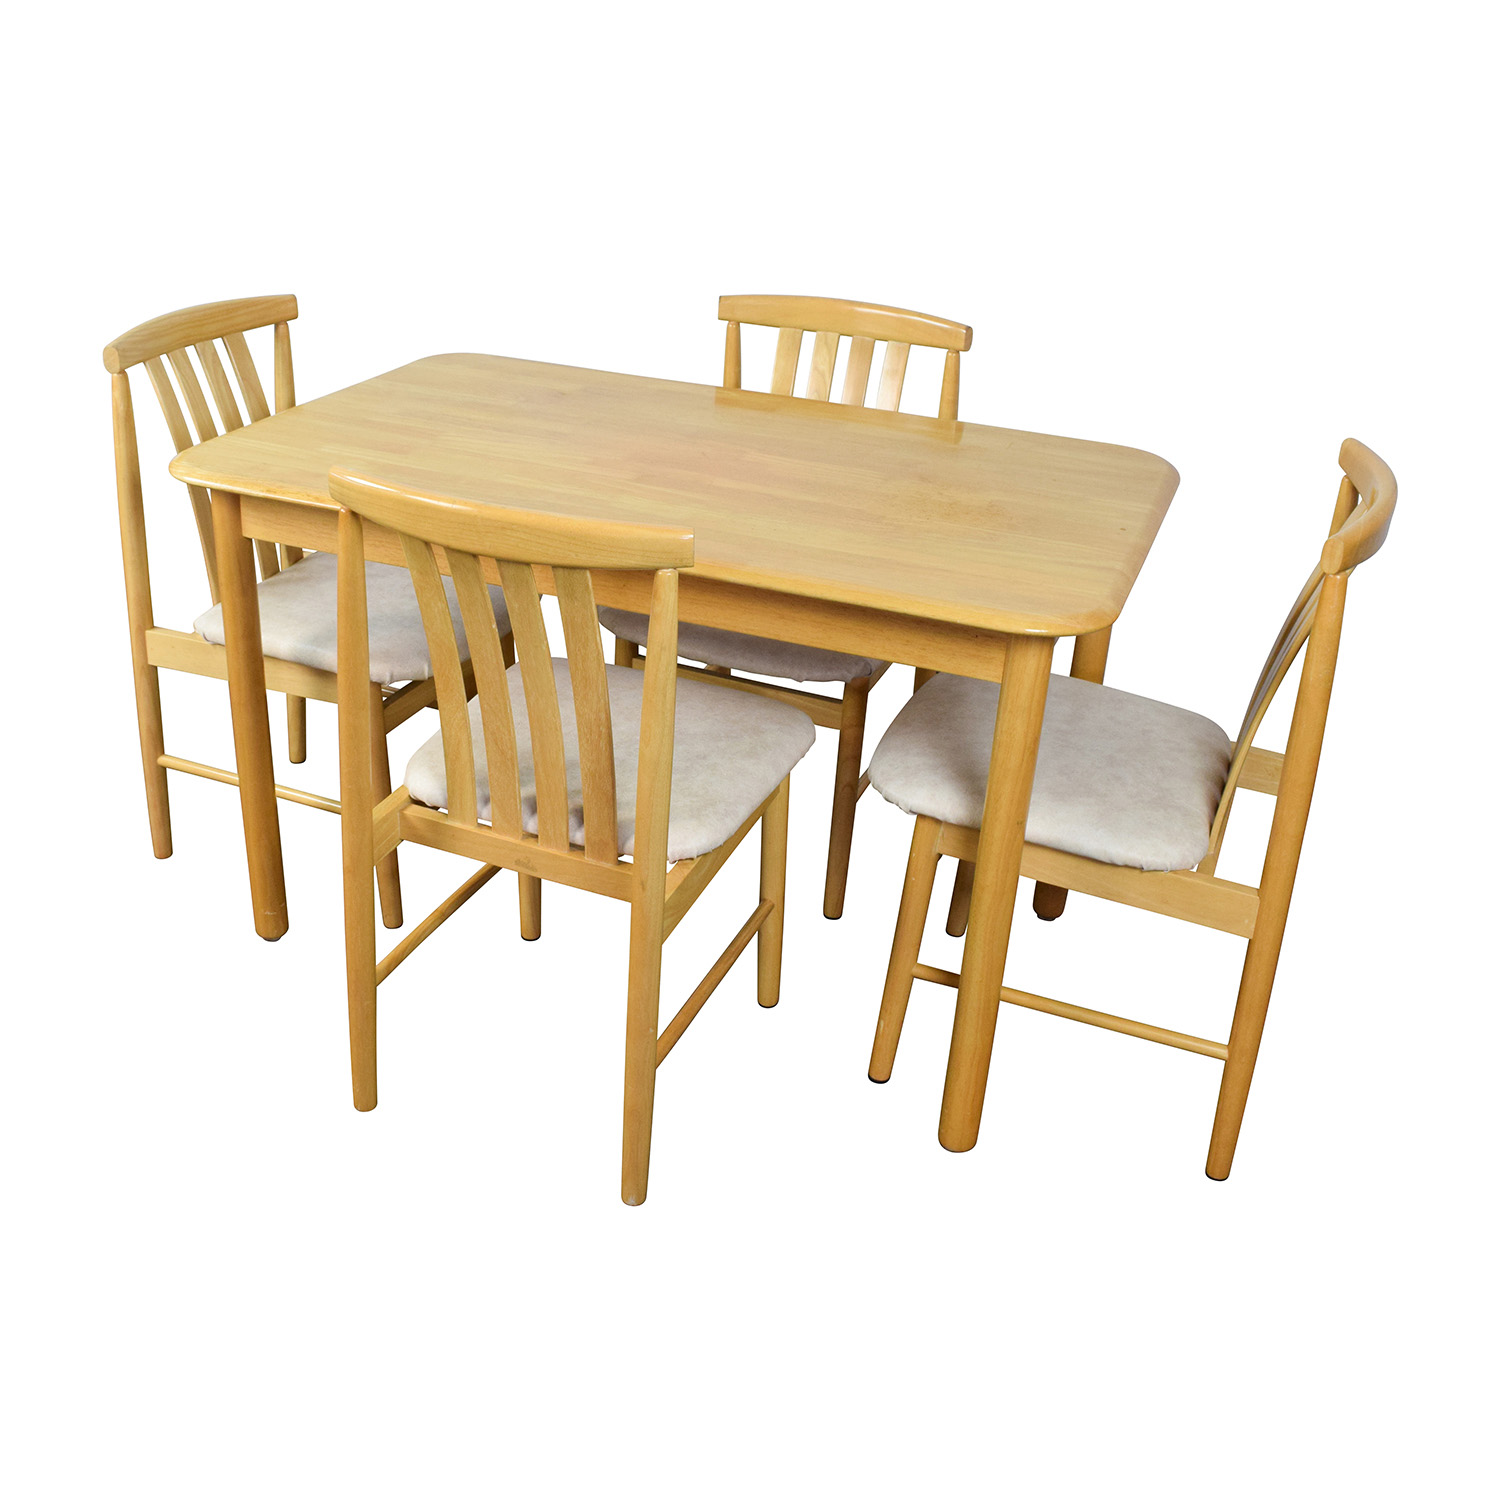 off  light wood dining table with four chairs  tables -  buy light wood dining table with four chairs online